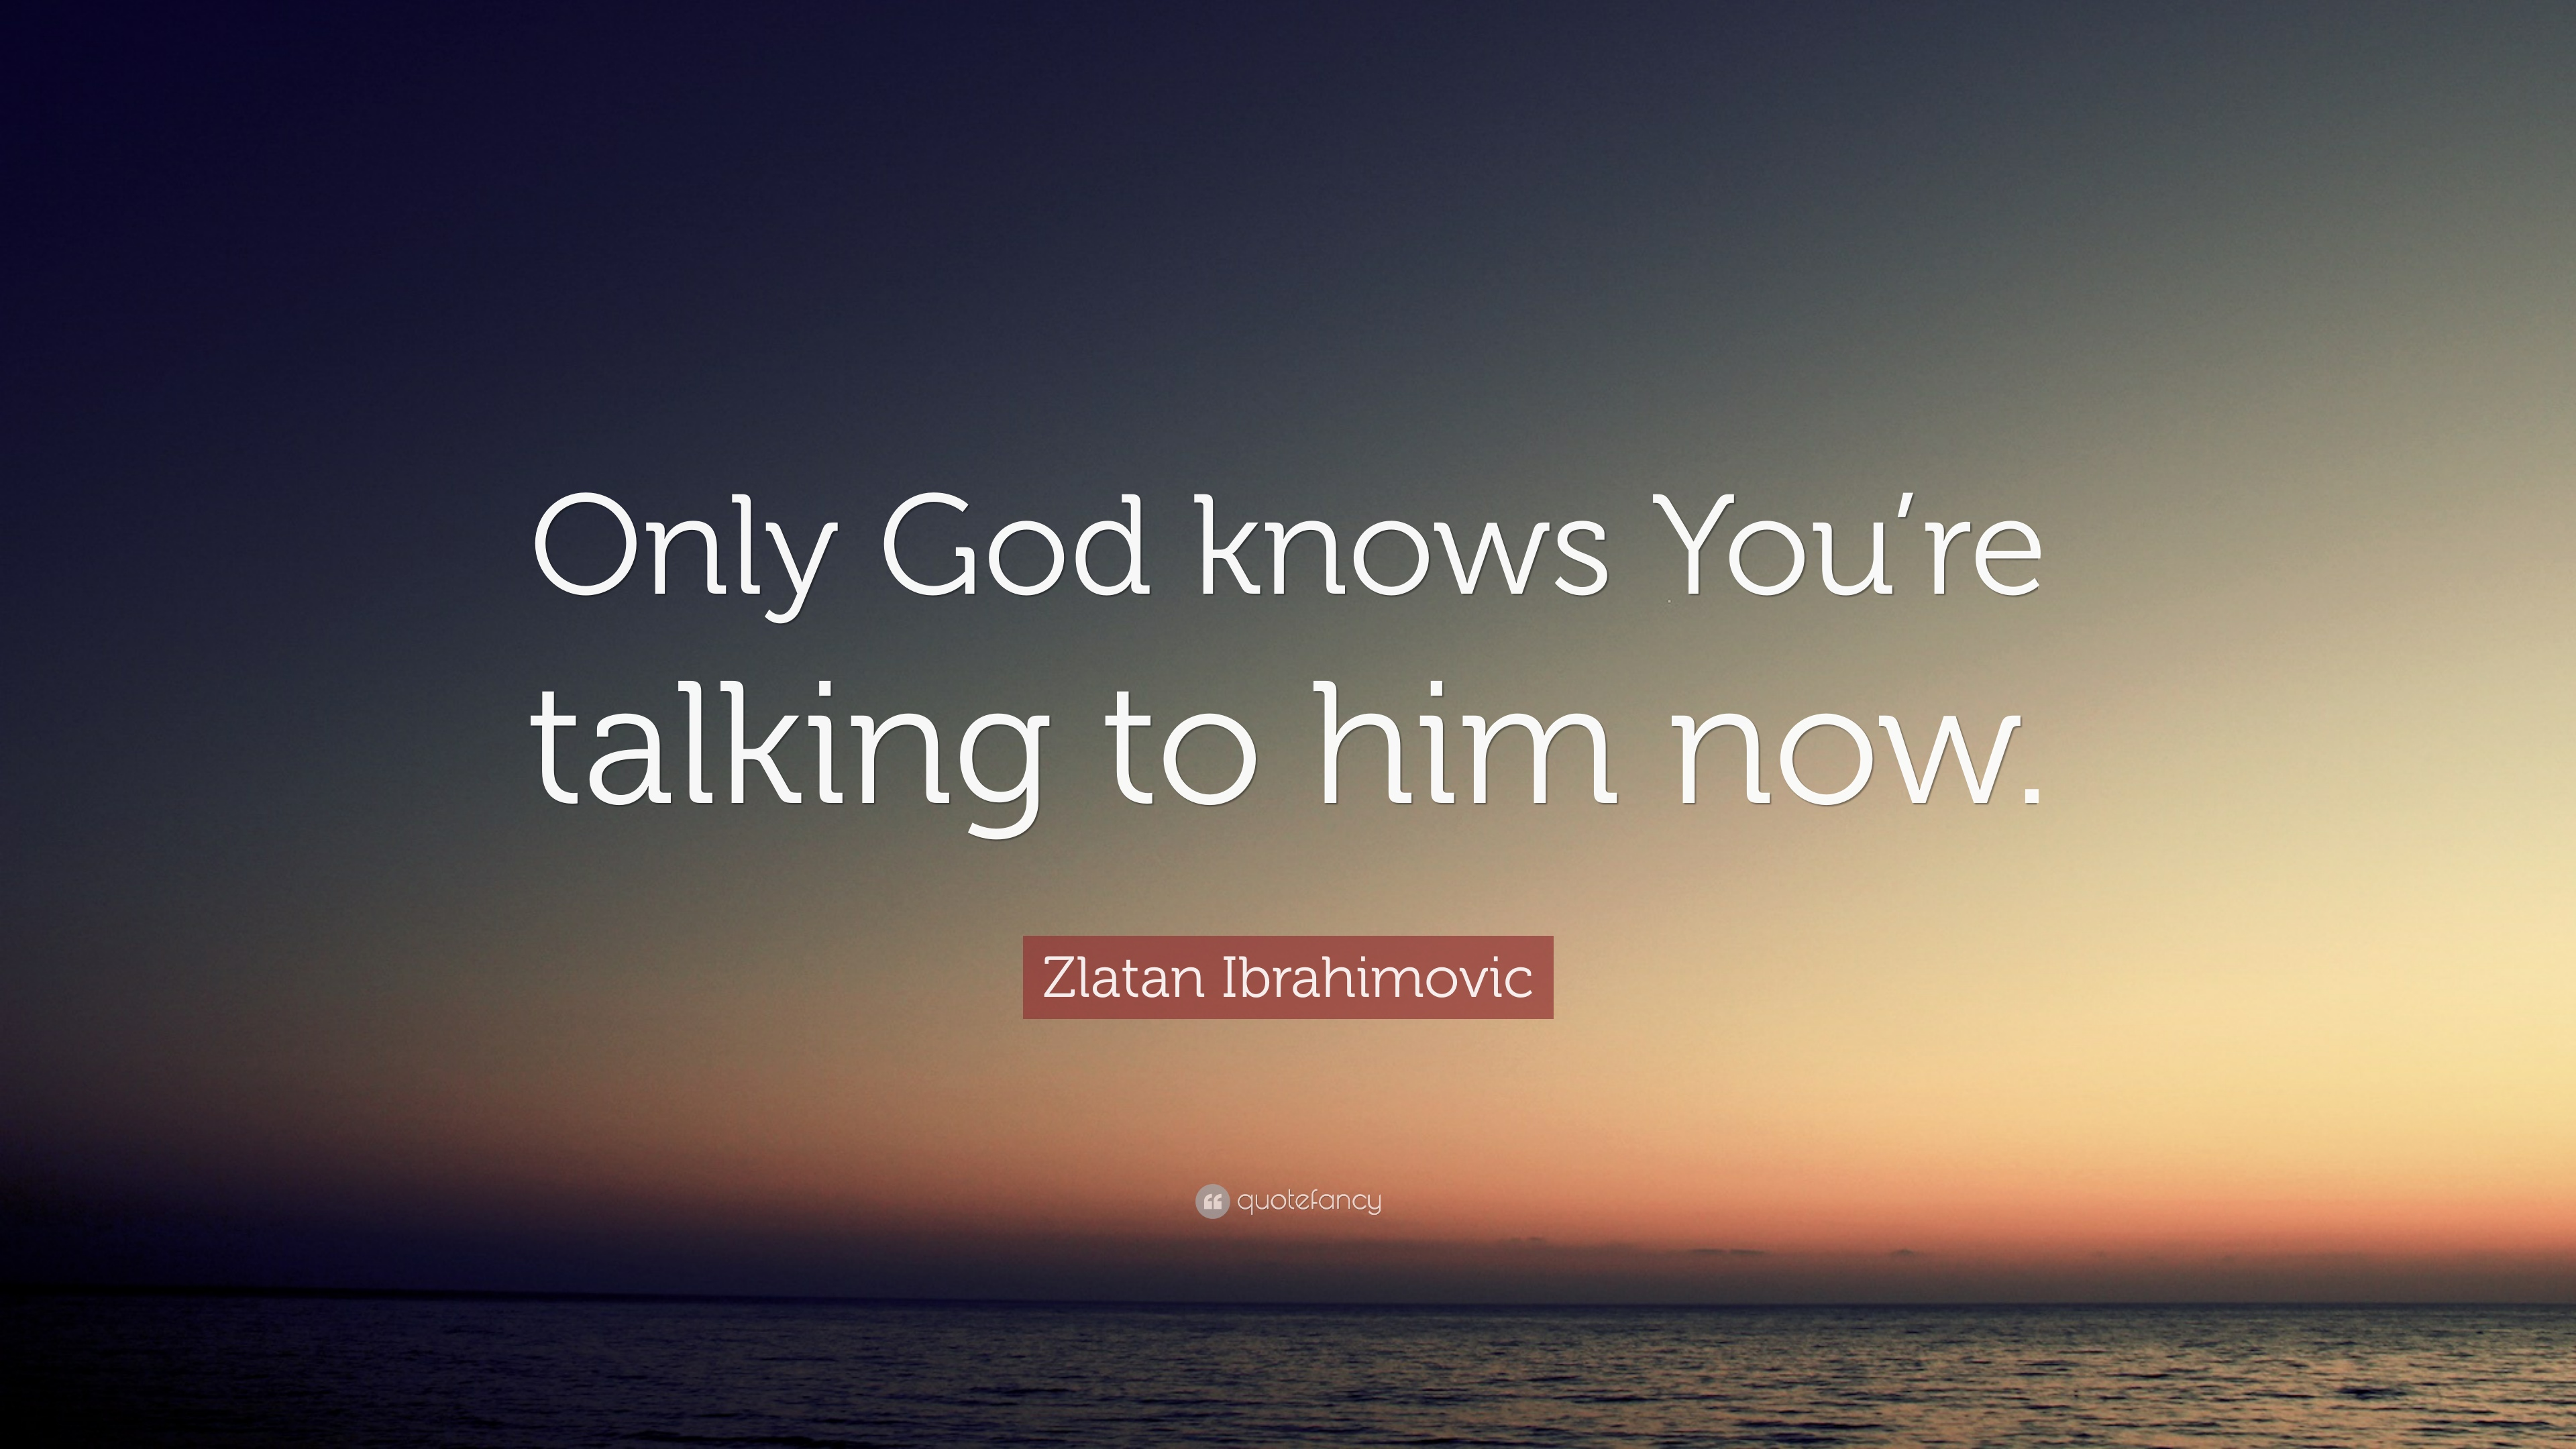 Zlatan Ibrahimovic Quote Only God Knows Youre Talking To Him Now